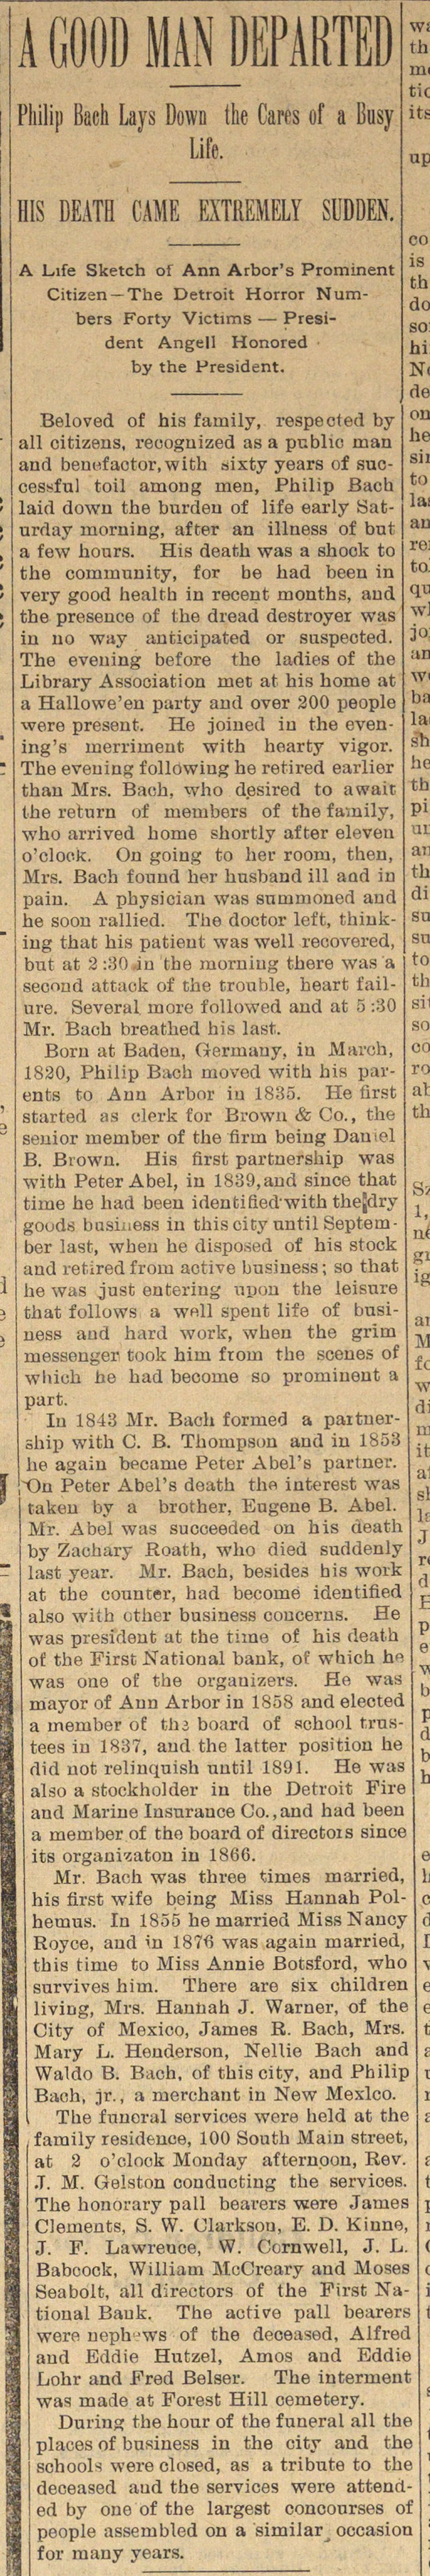 A Good Man Departed image